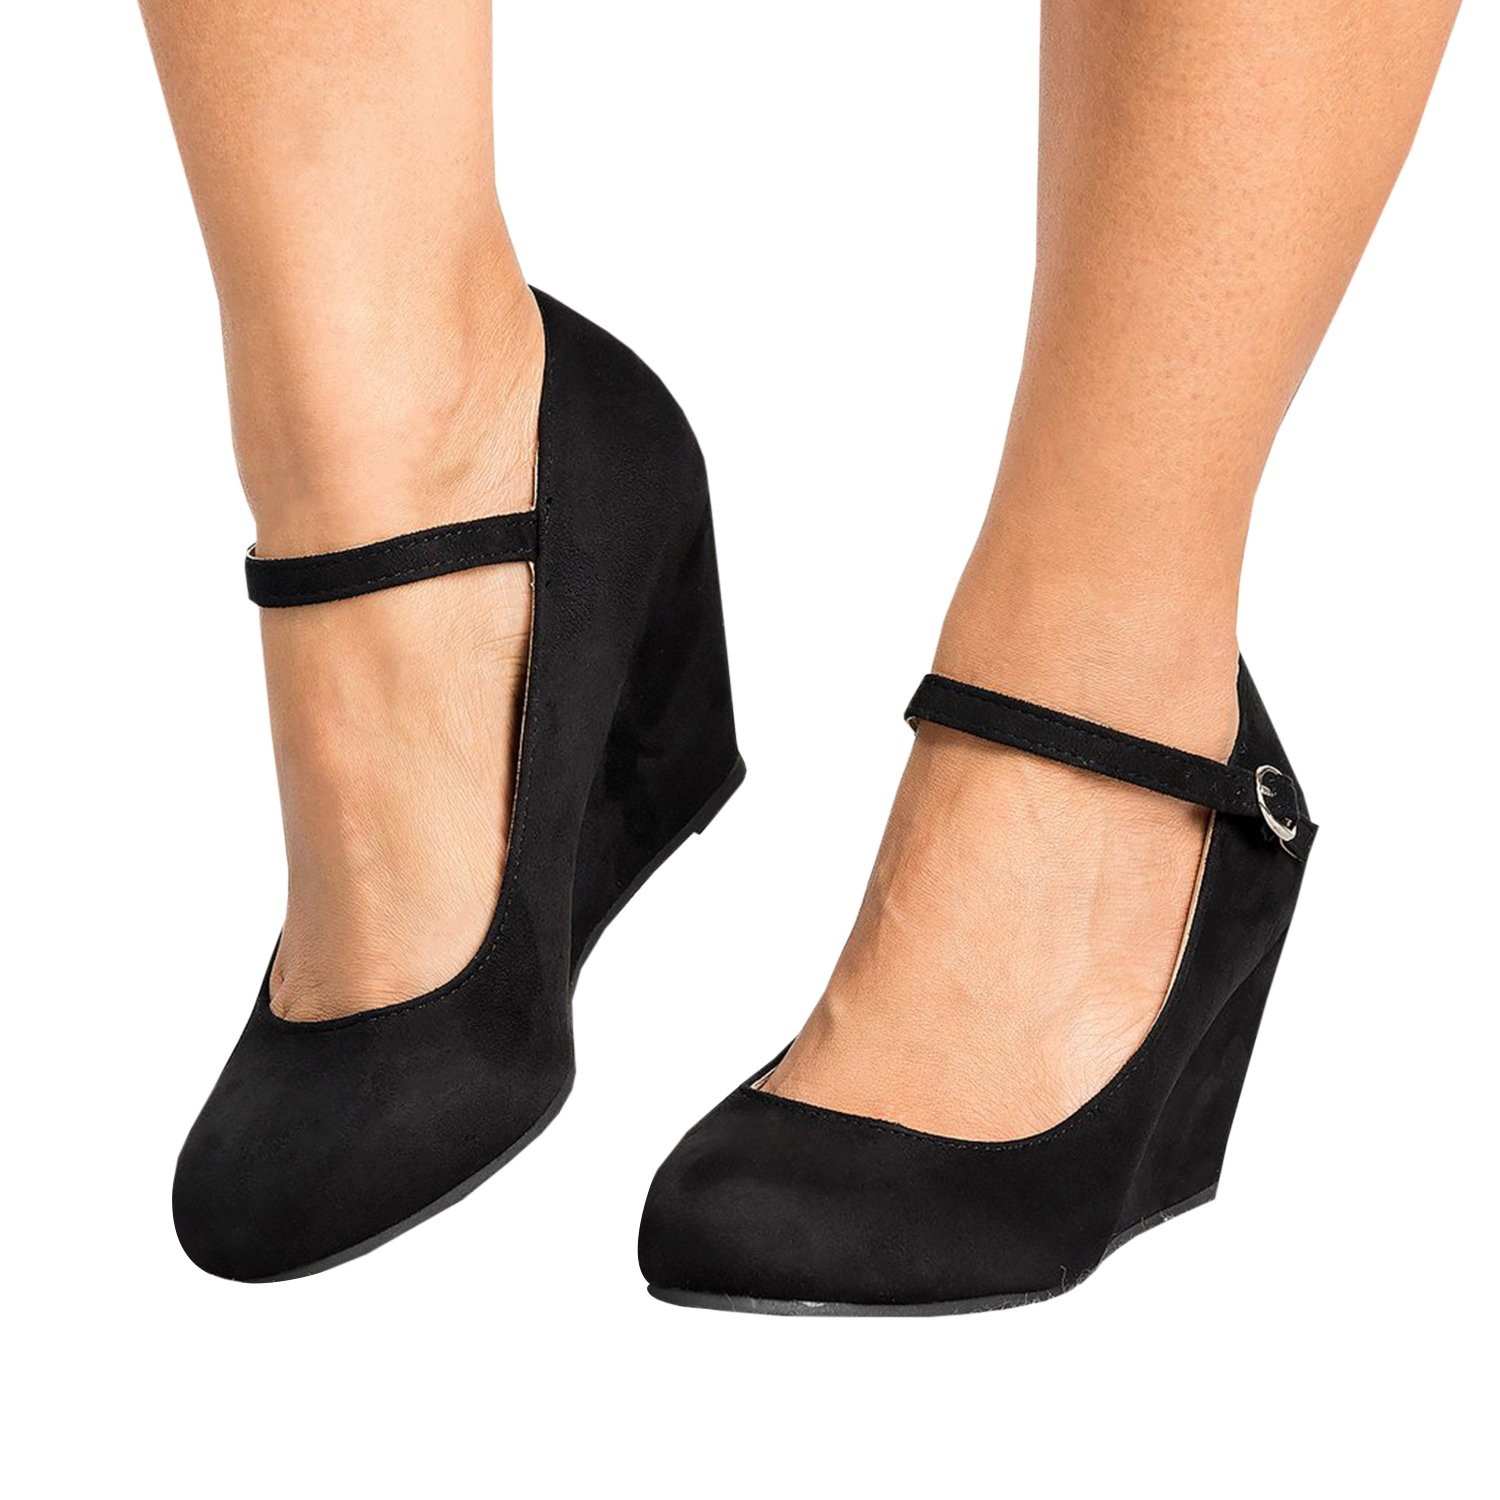 0c3bbc5b080 Syktkmx Womens Mary Jane Wedges Pumps Ankle Strap Closed Toe Heeled Walking  Work Shoes